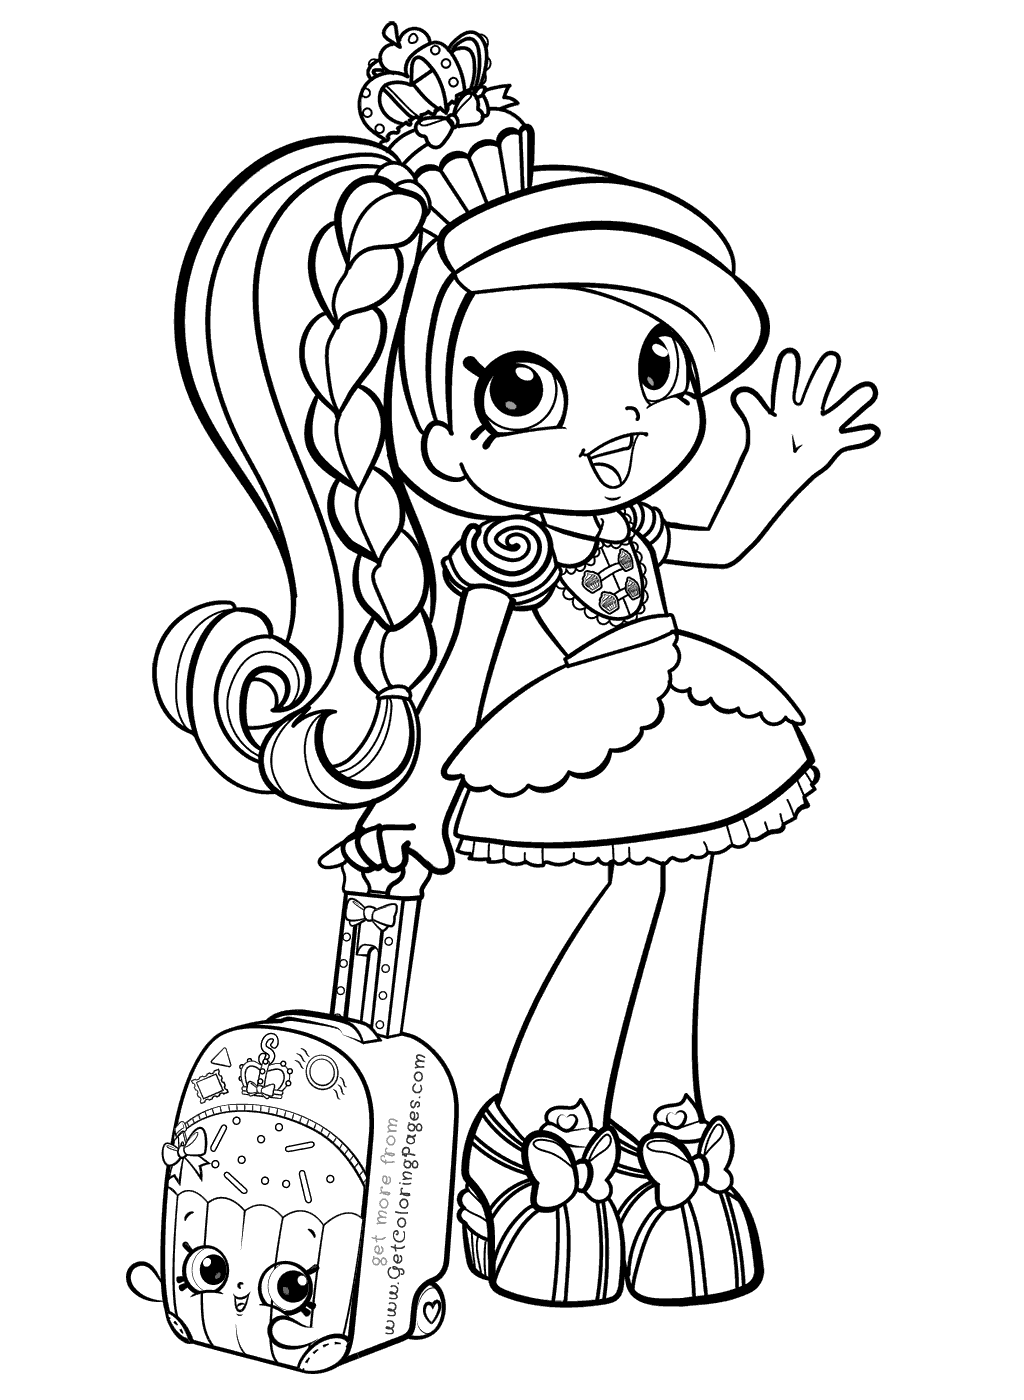 free girl coloring pages to print | Shoppies Coloring Pages | Shopkins colouring pages ...